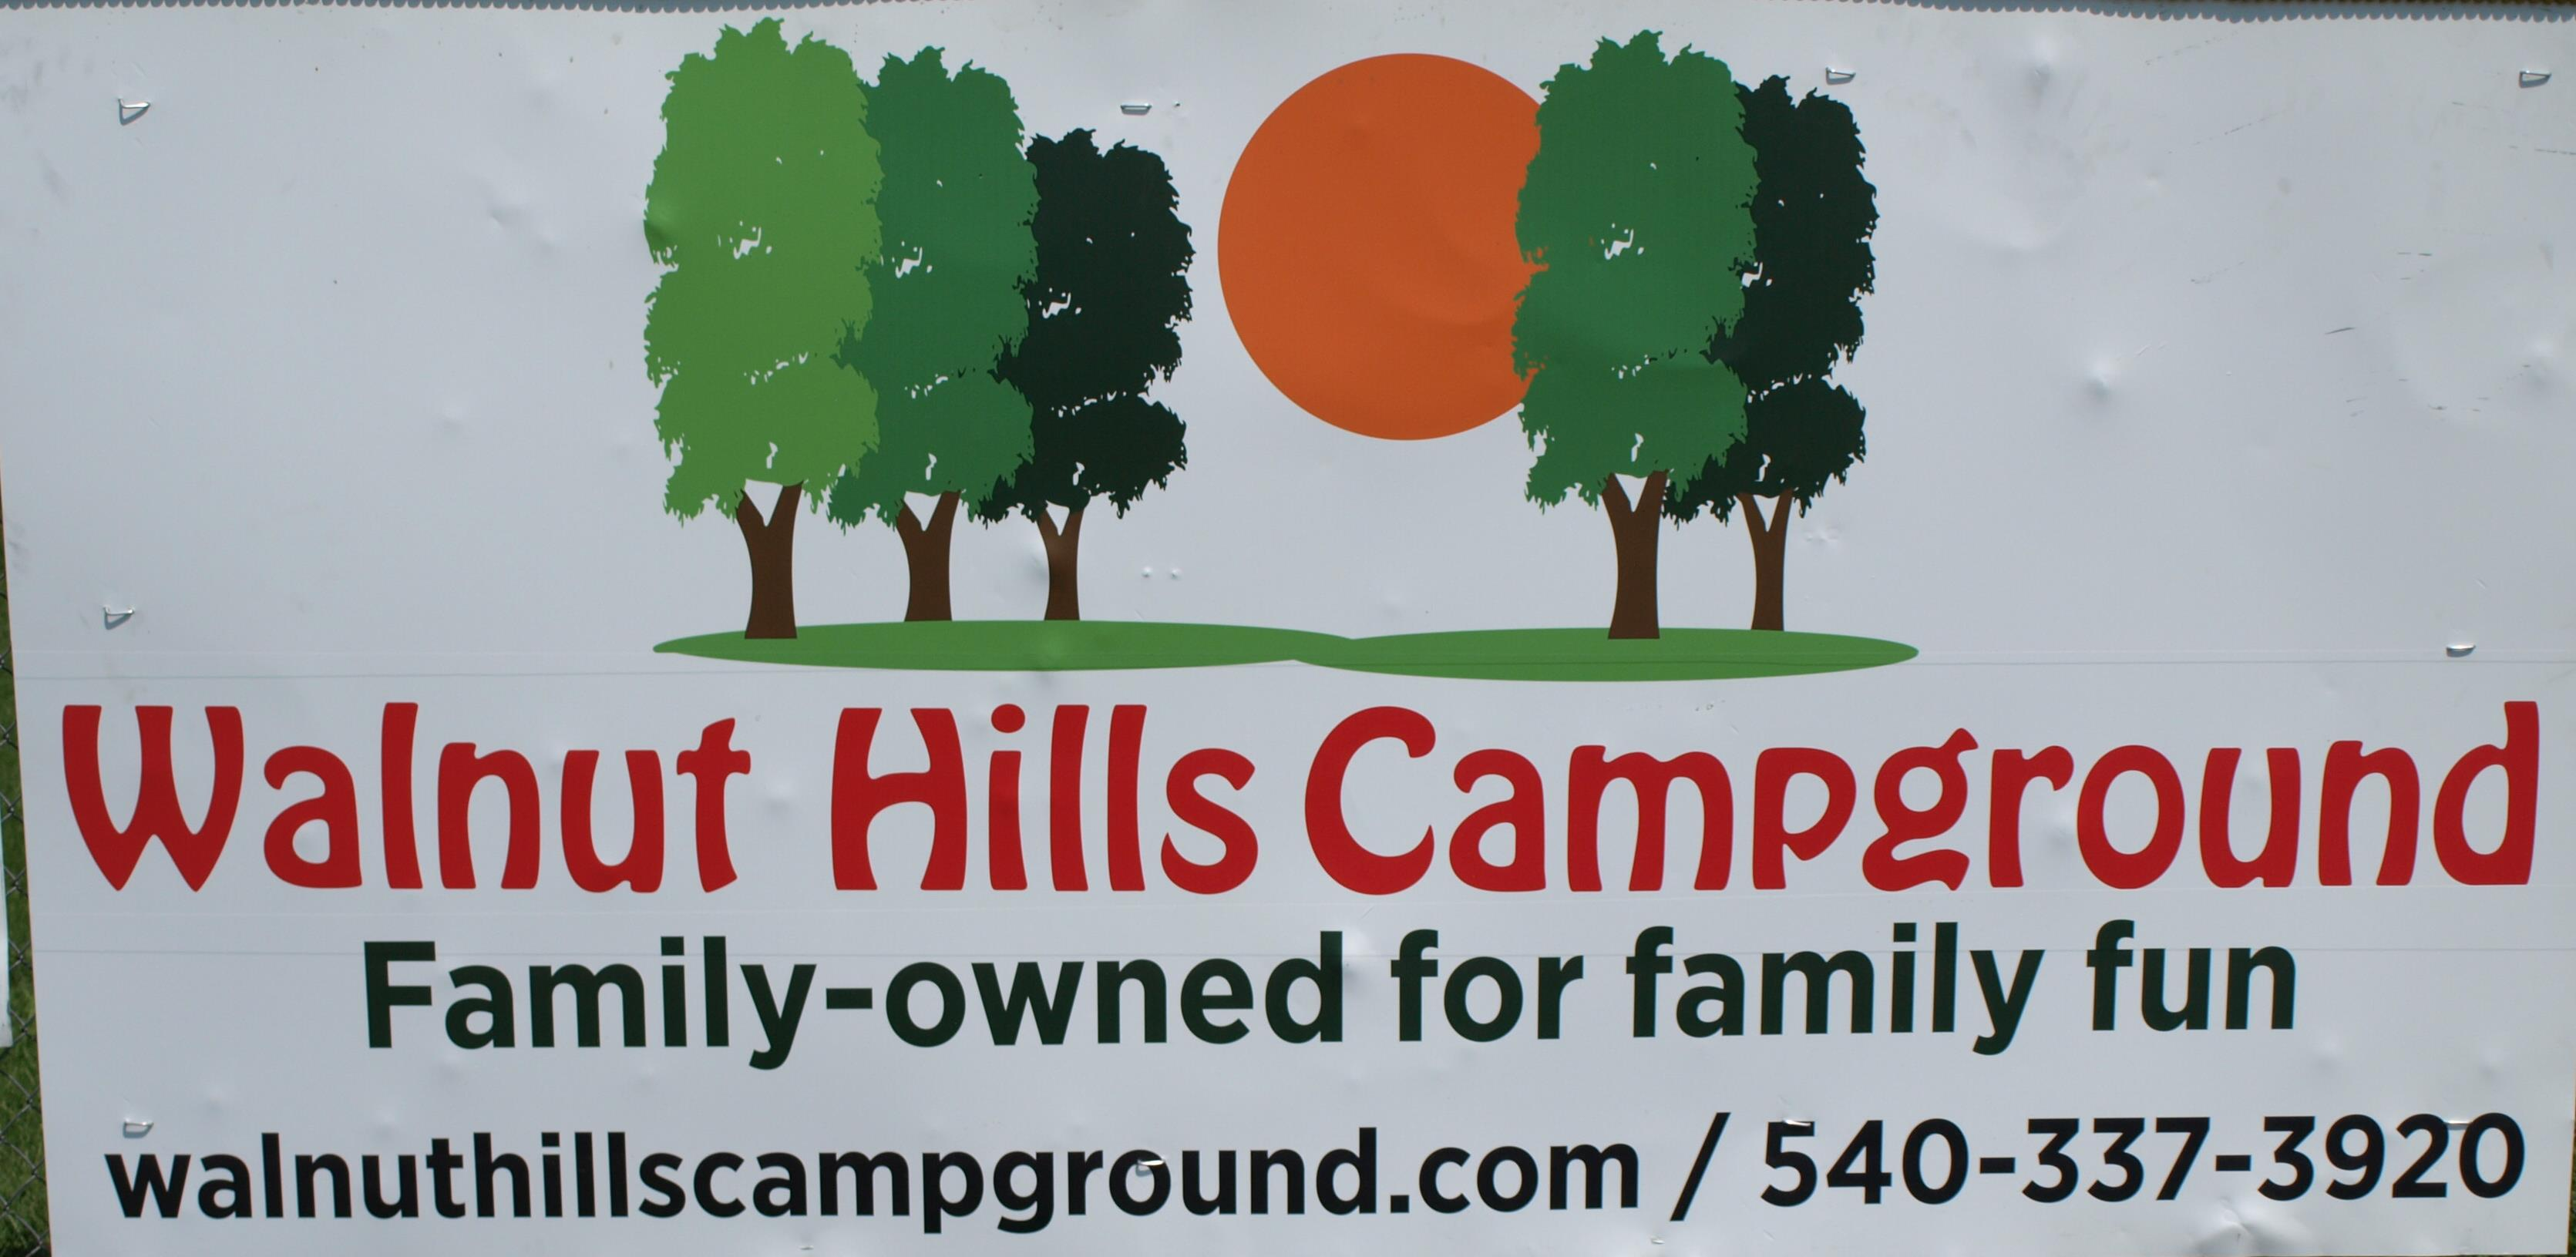 Walnut Hills Campground